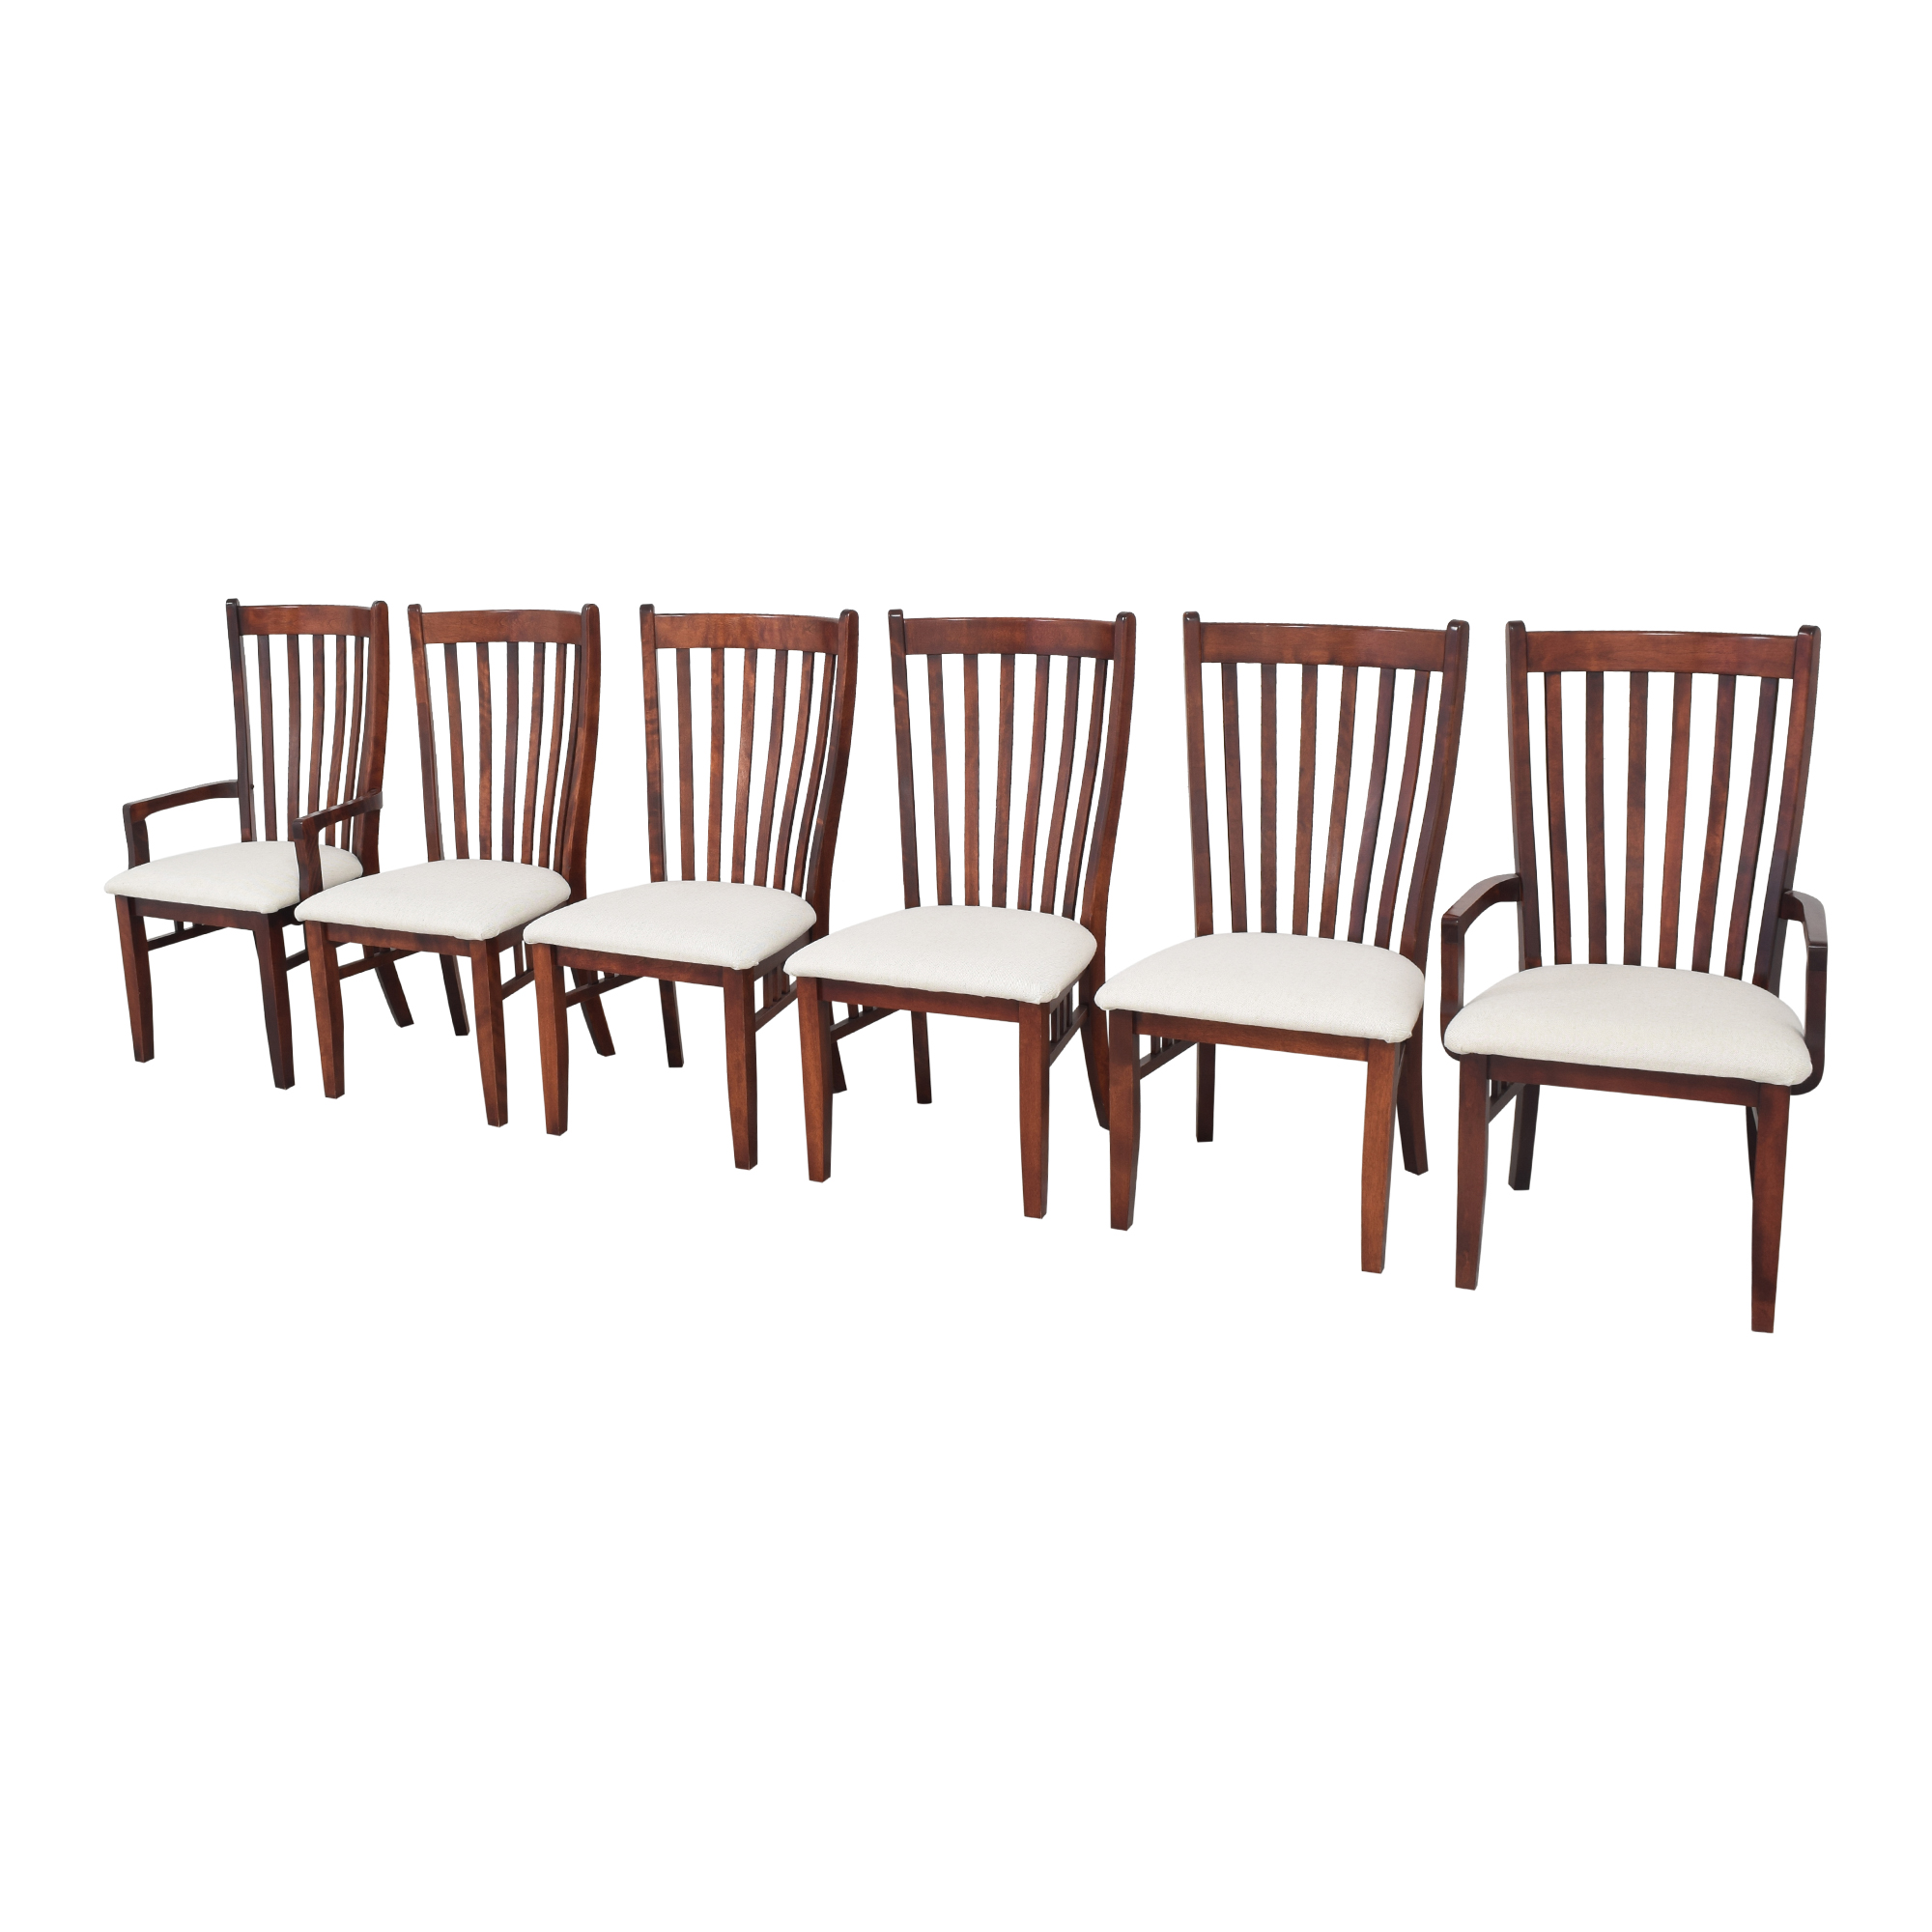 Canadel Canadel Slat Back Dining Chairs